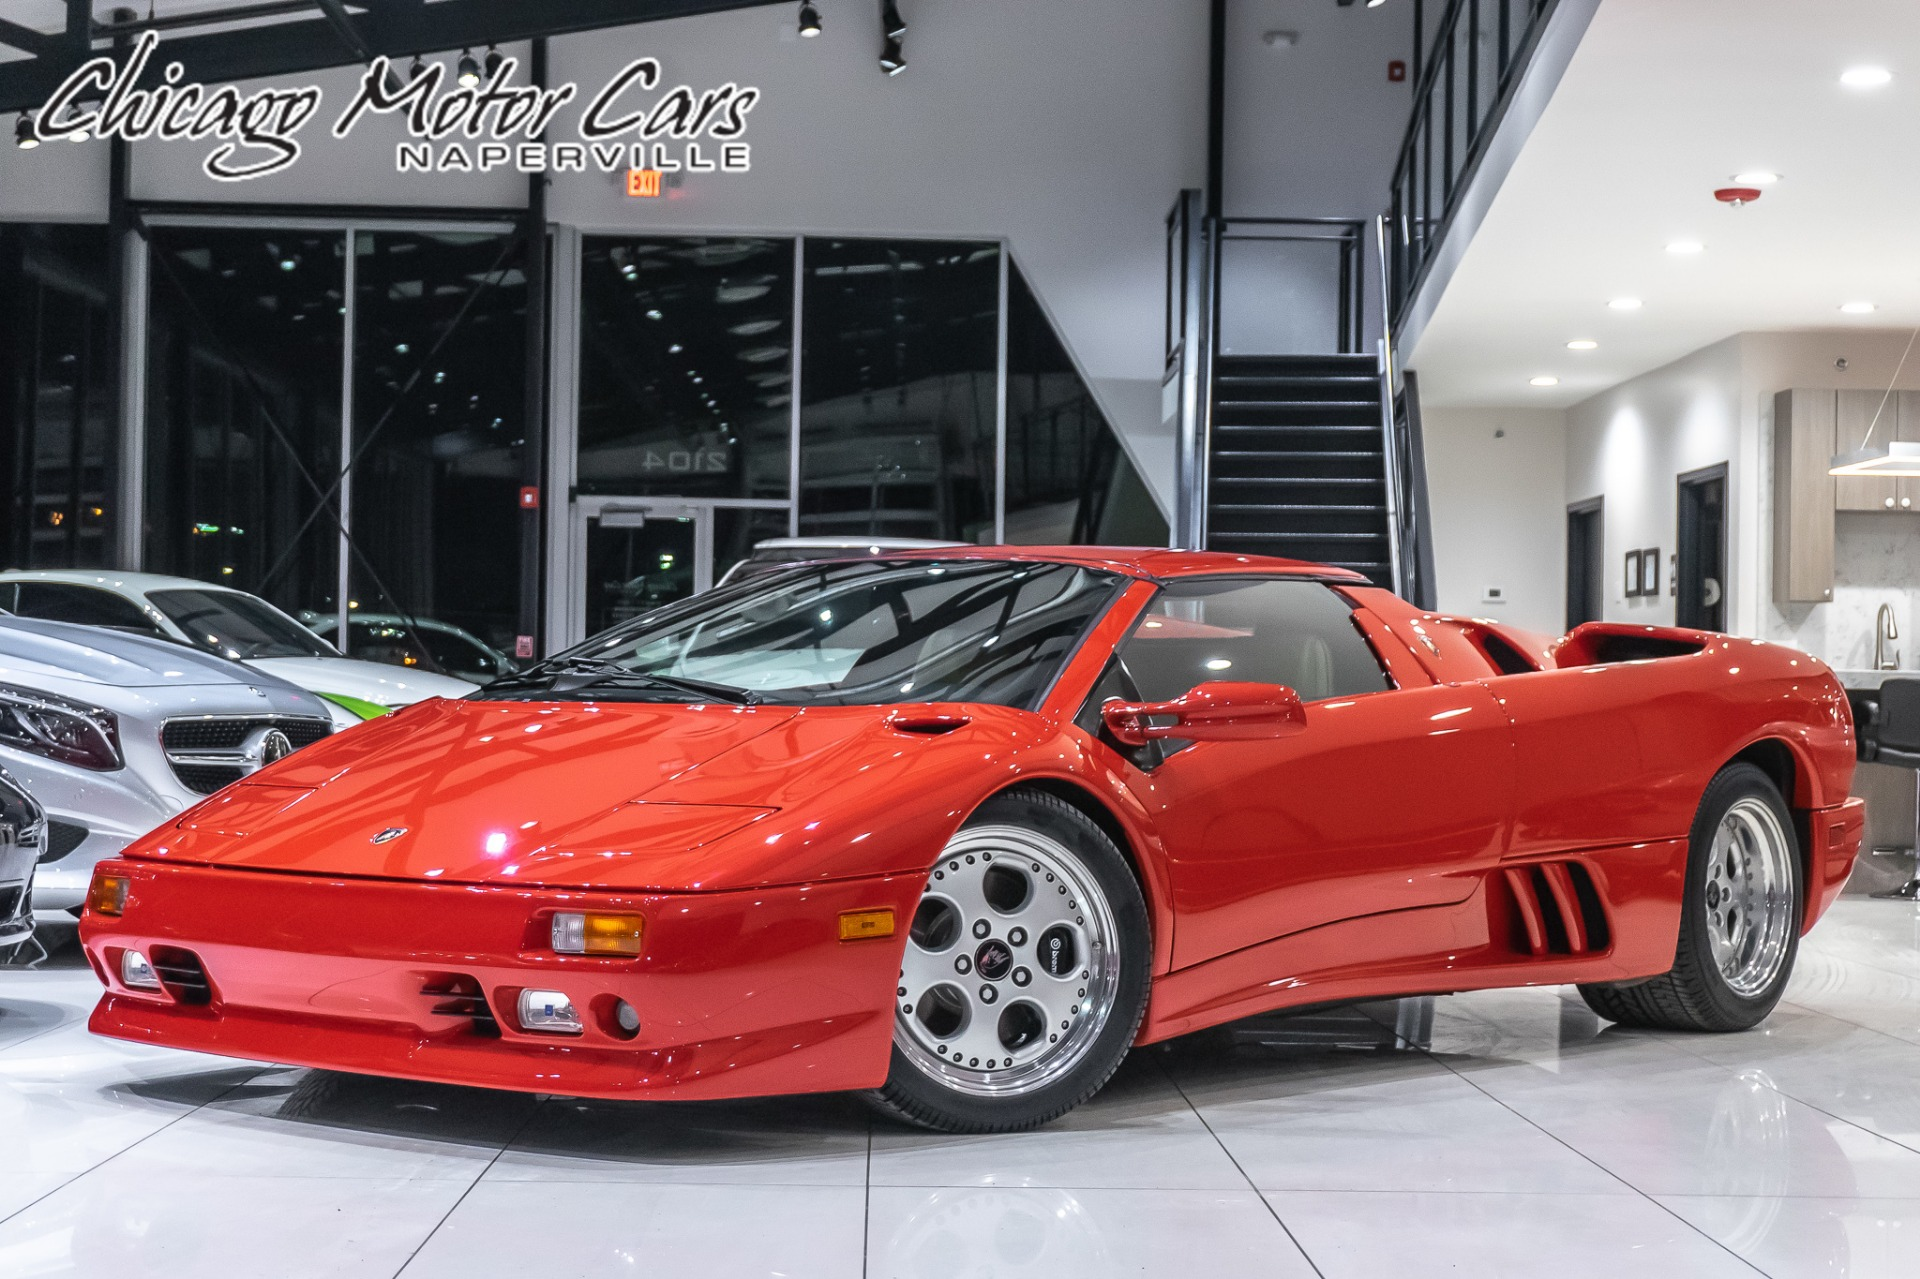 used 1997 lamborghini diablo vt roadster 1 260 miles collectors car 5 speed gated manual for sale special pricing chicago motor cars stock 16051a used 1997 lamborghini diablo vt